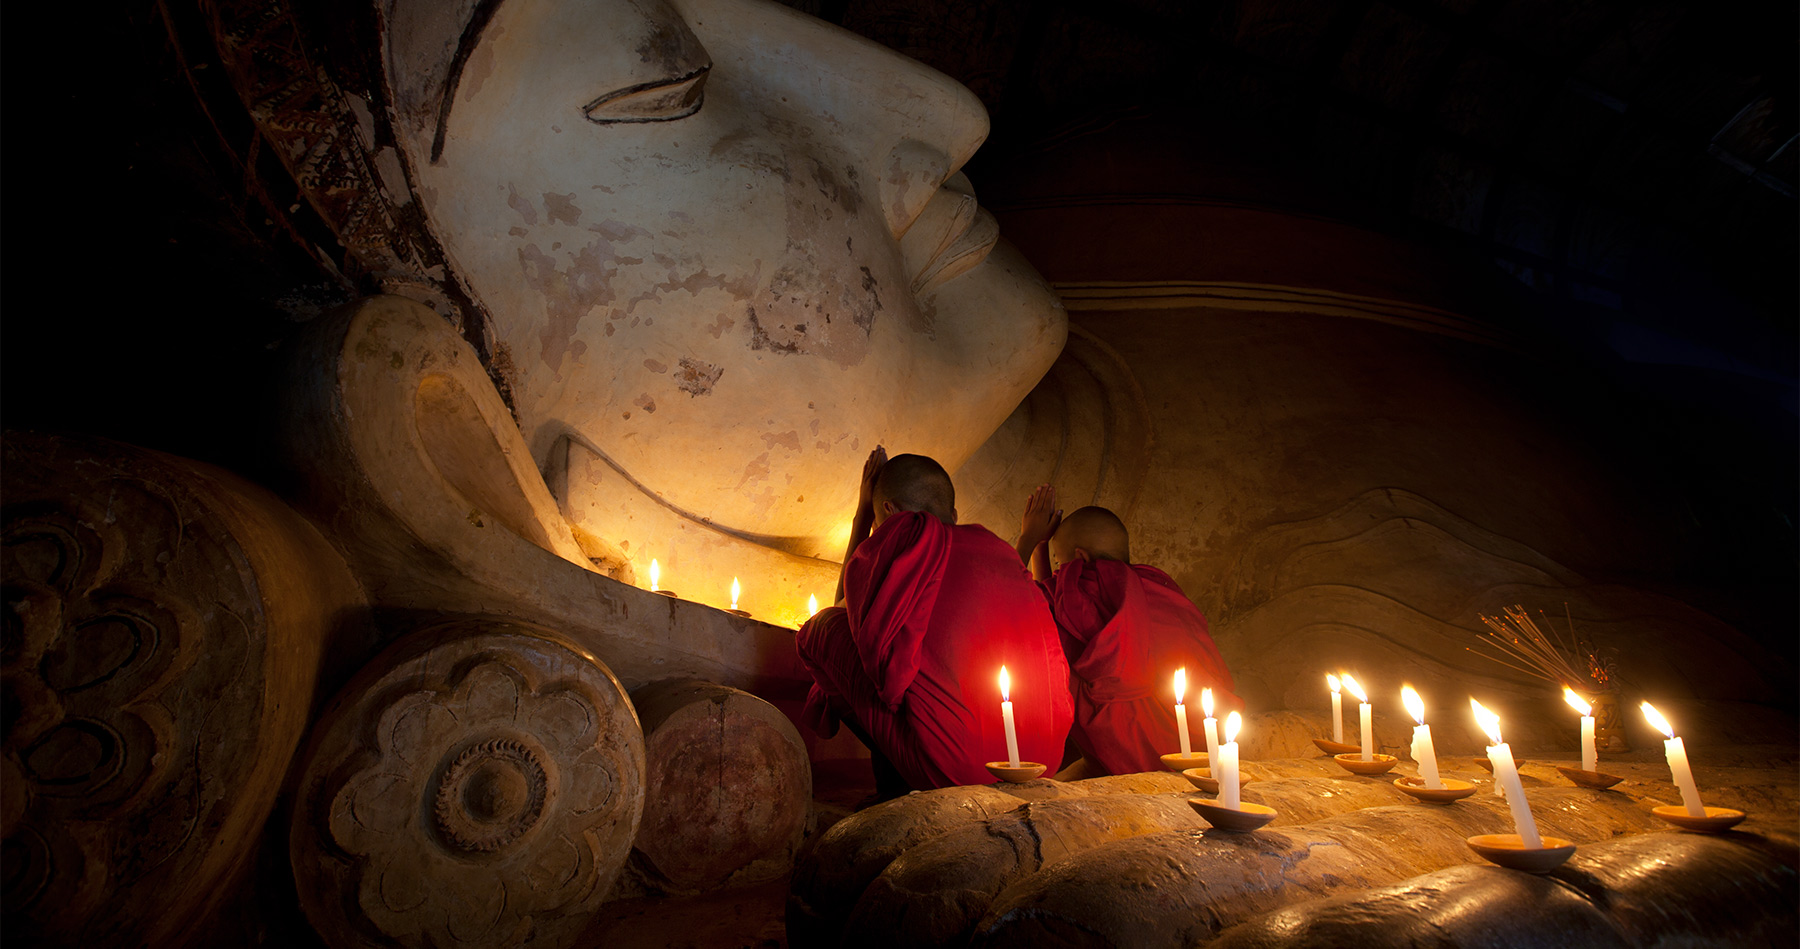 bagan_burma_monbks_praying